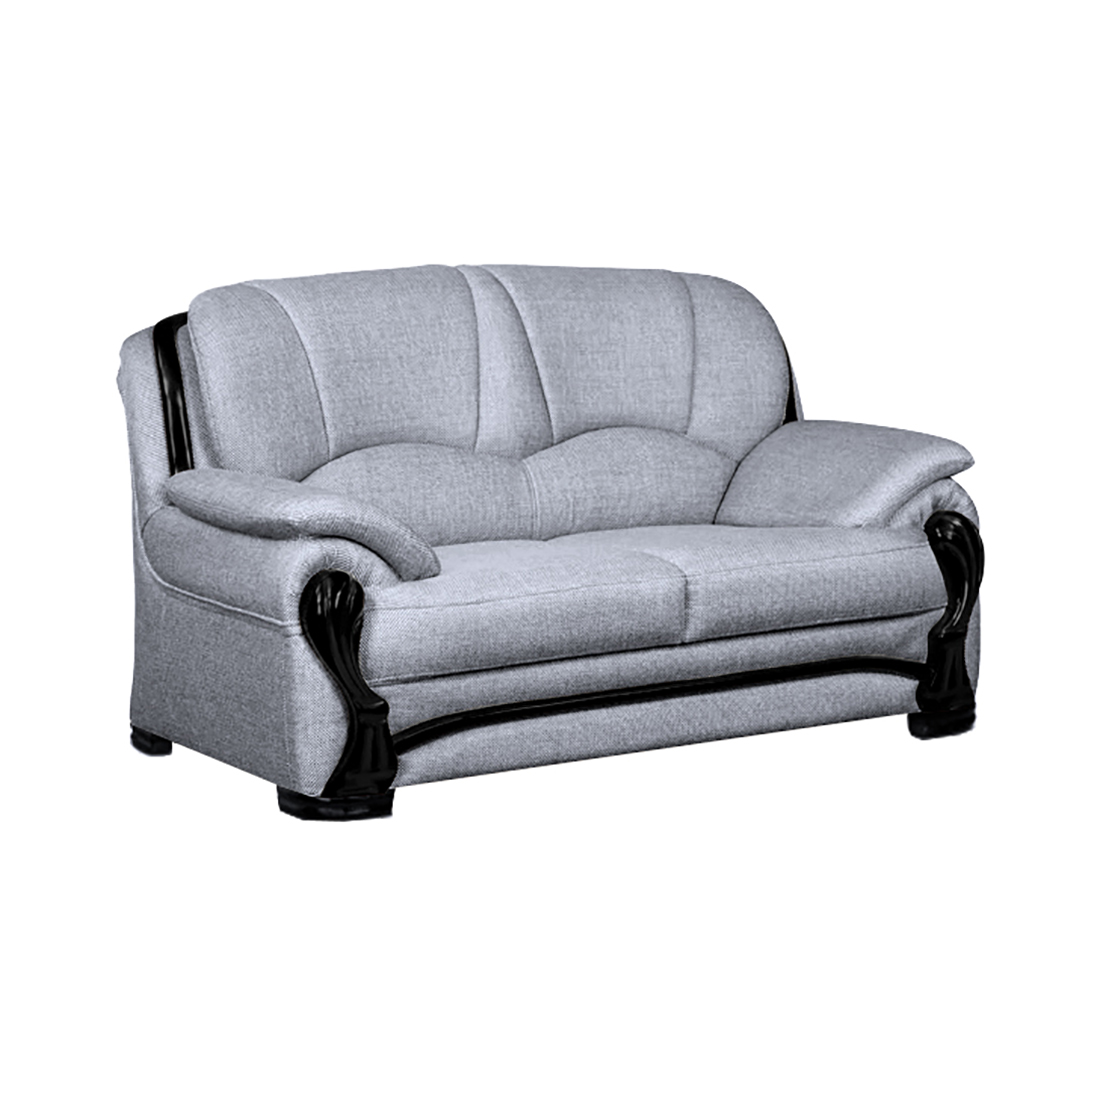 length of 2 seater sofa cost reupholstering a ireland bharat lifestyle china gate fabric color light grey online price in india buybhar